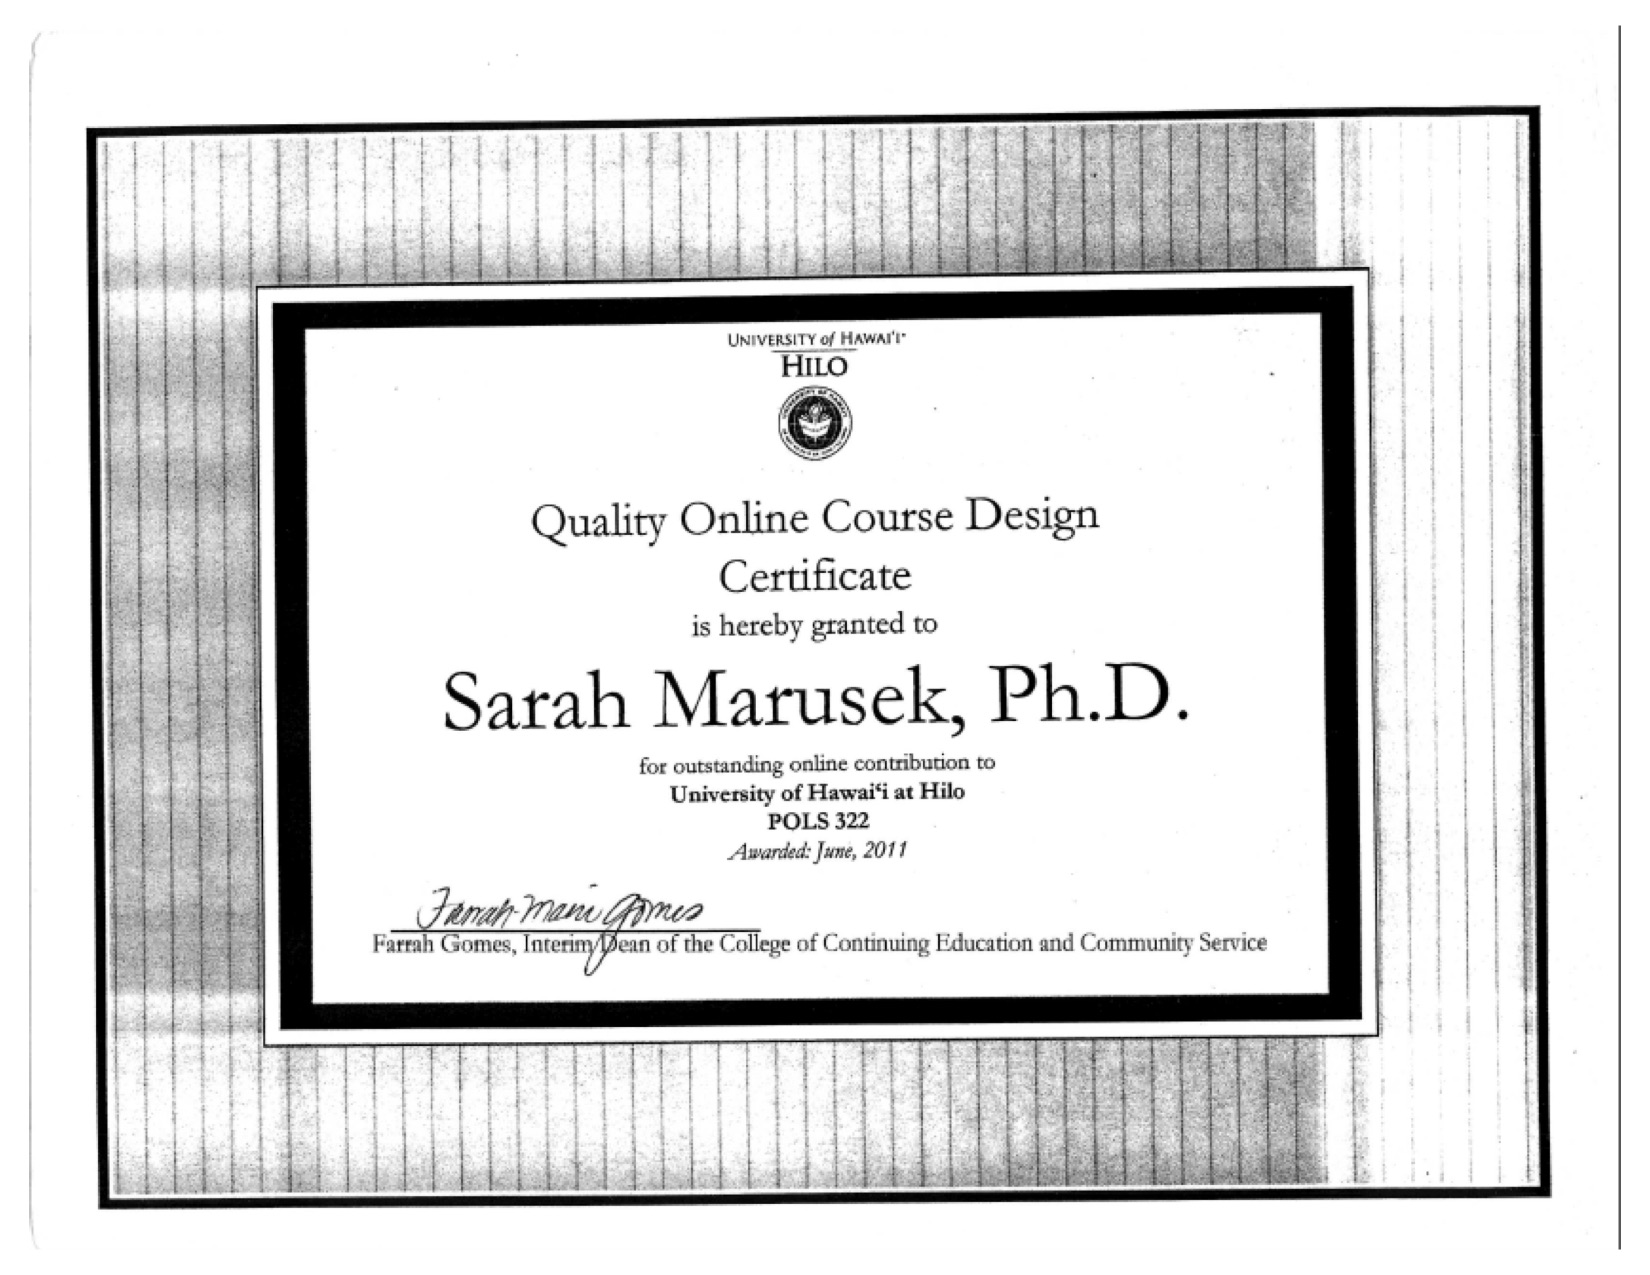 Certified quality online courses pols 322 criminal justice quality online course design certificate awarded to sarah marusek 1betcityfo Choice Image